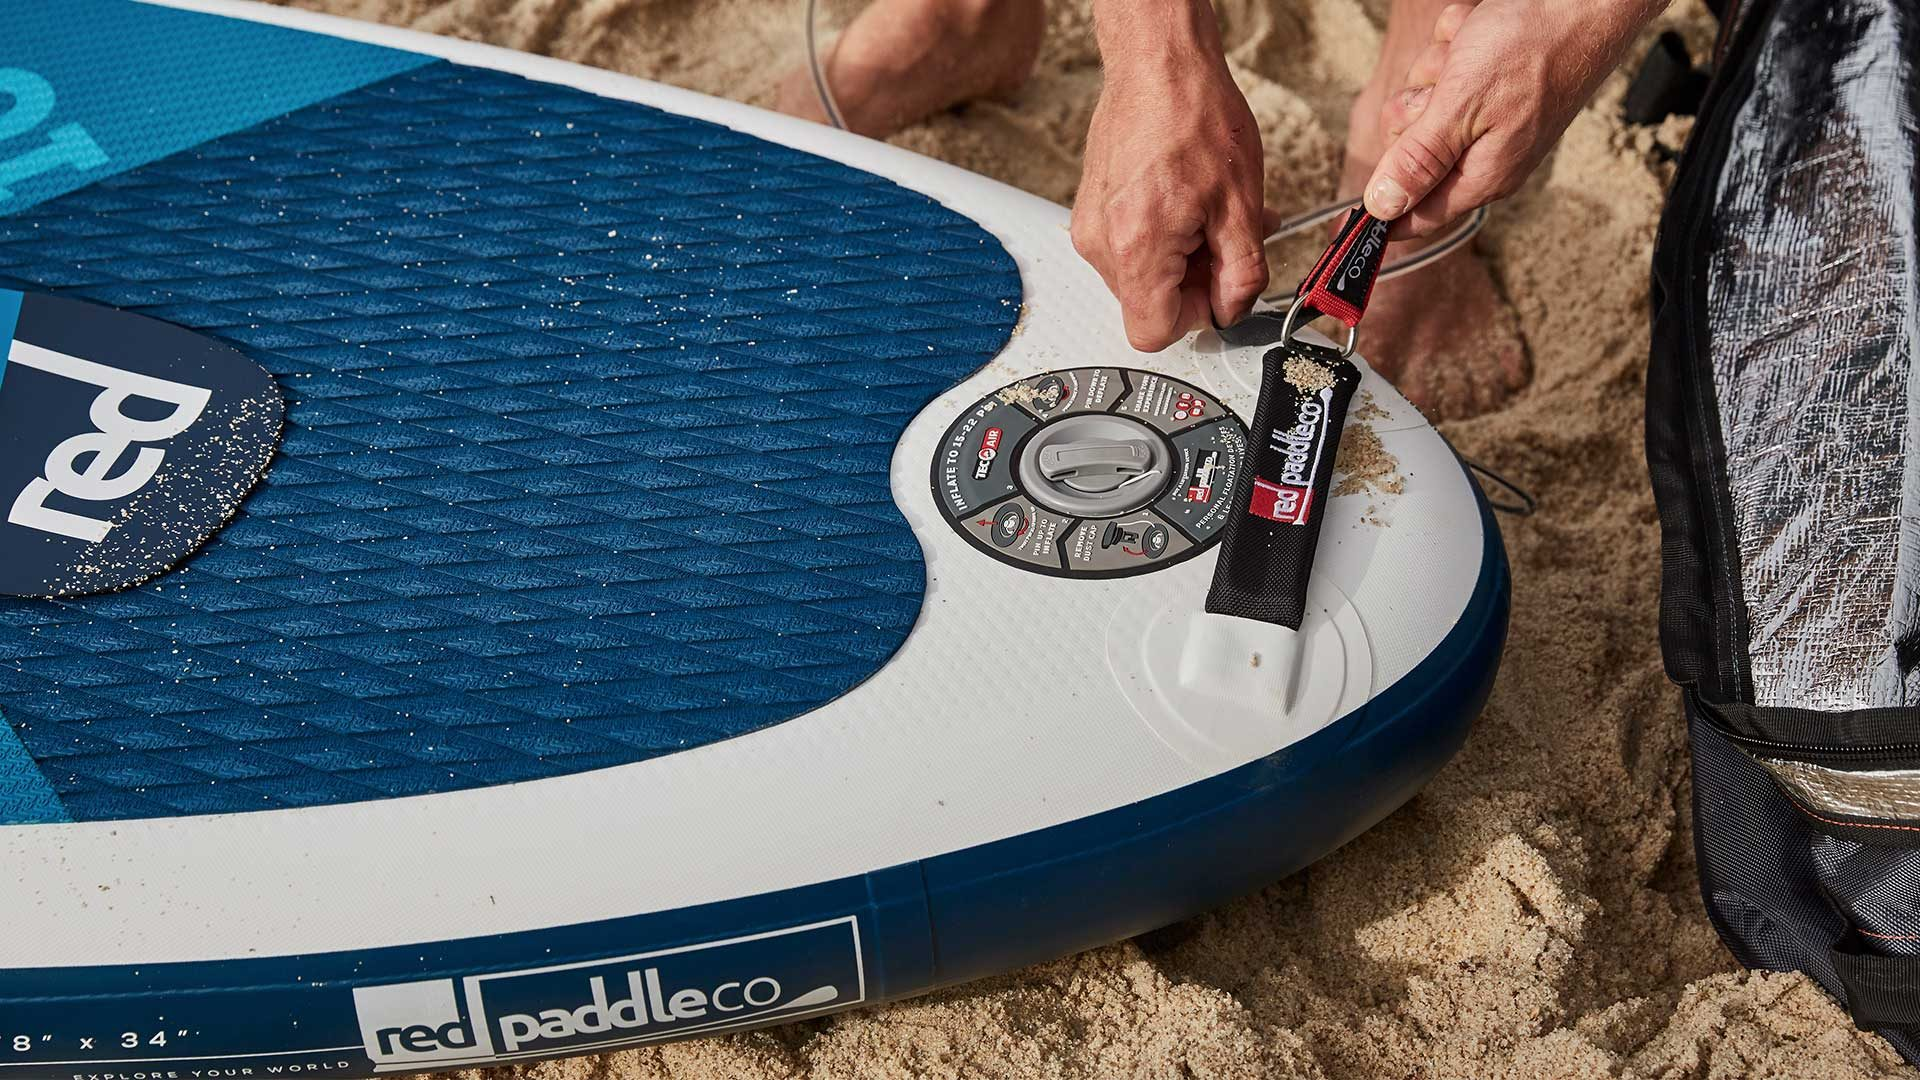 redpaddleco-108-ride-msl-inflatable-paddle-board-desktop-gallery-valve